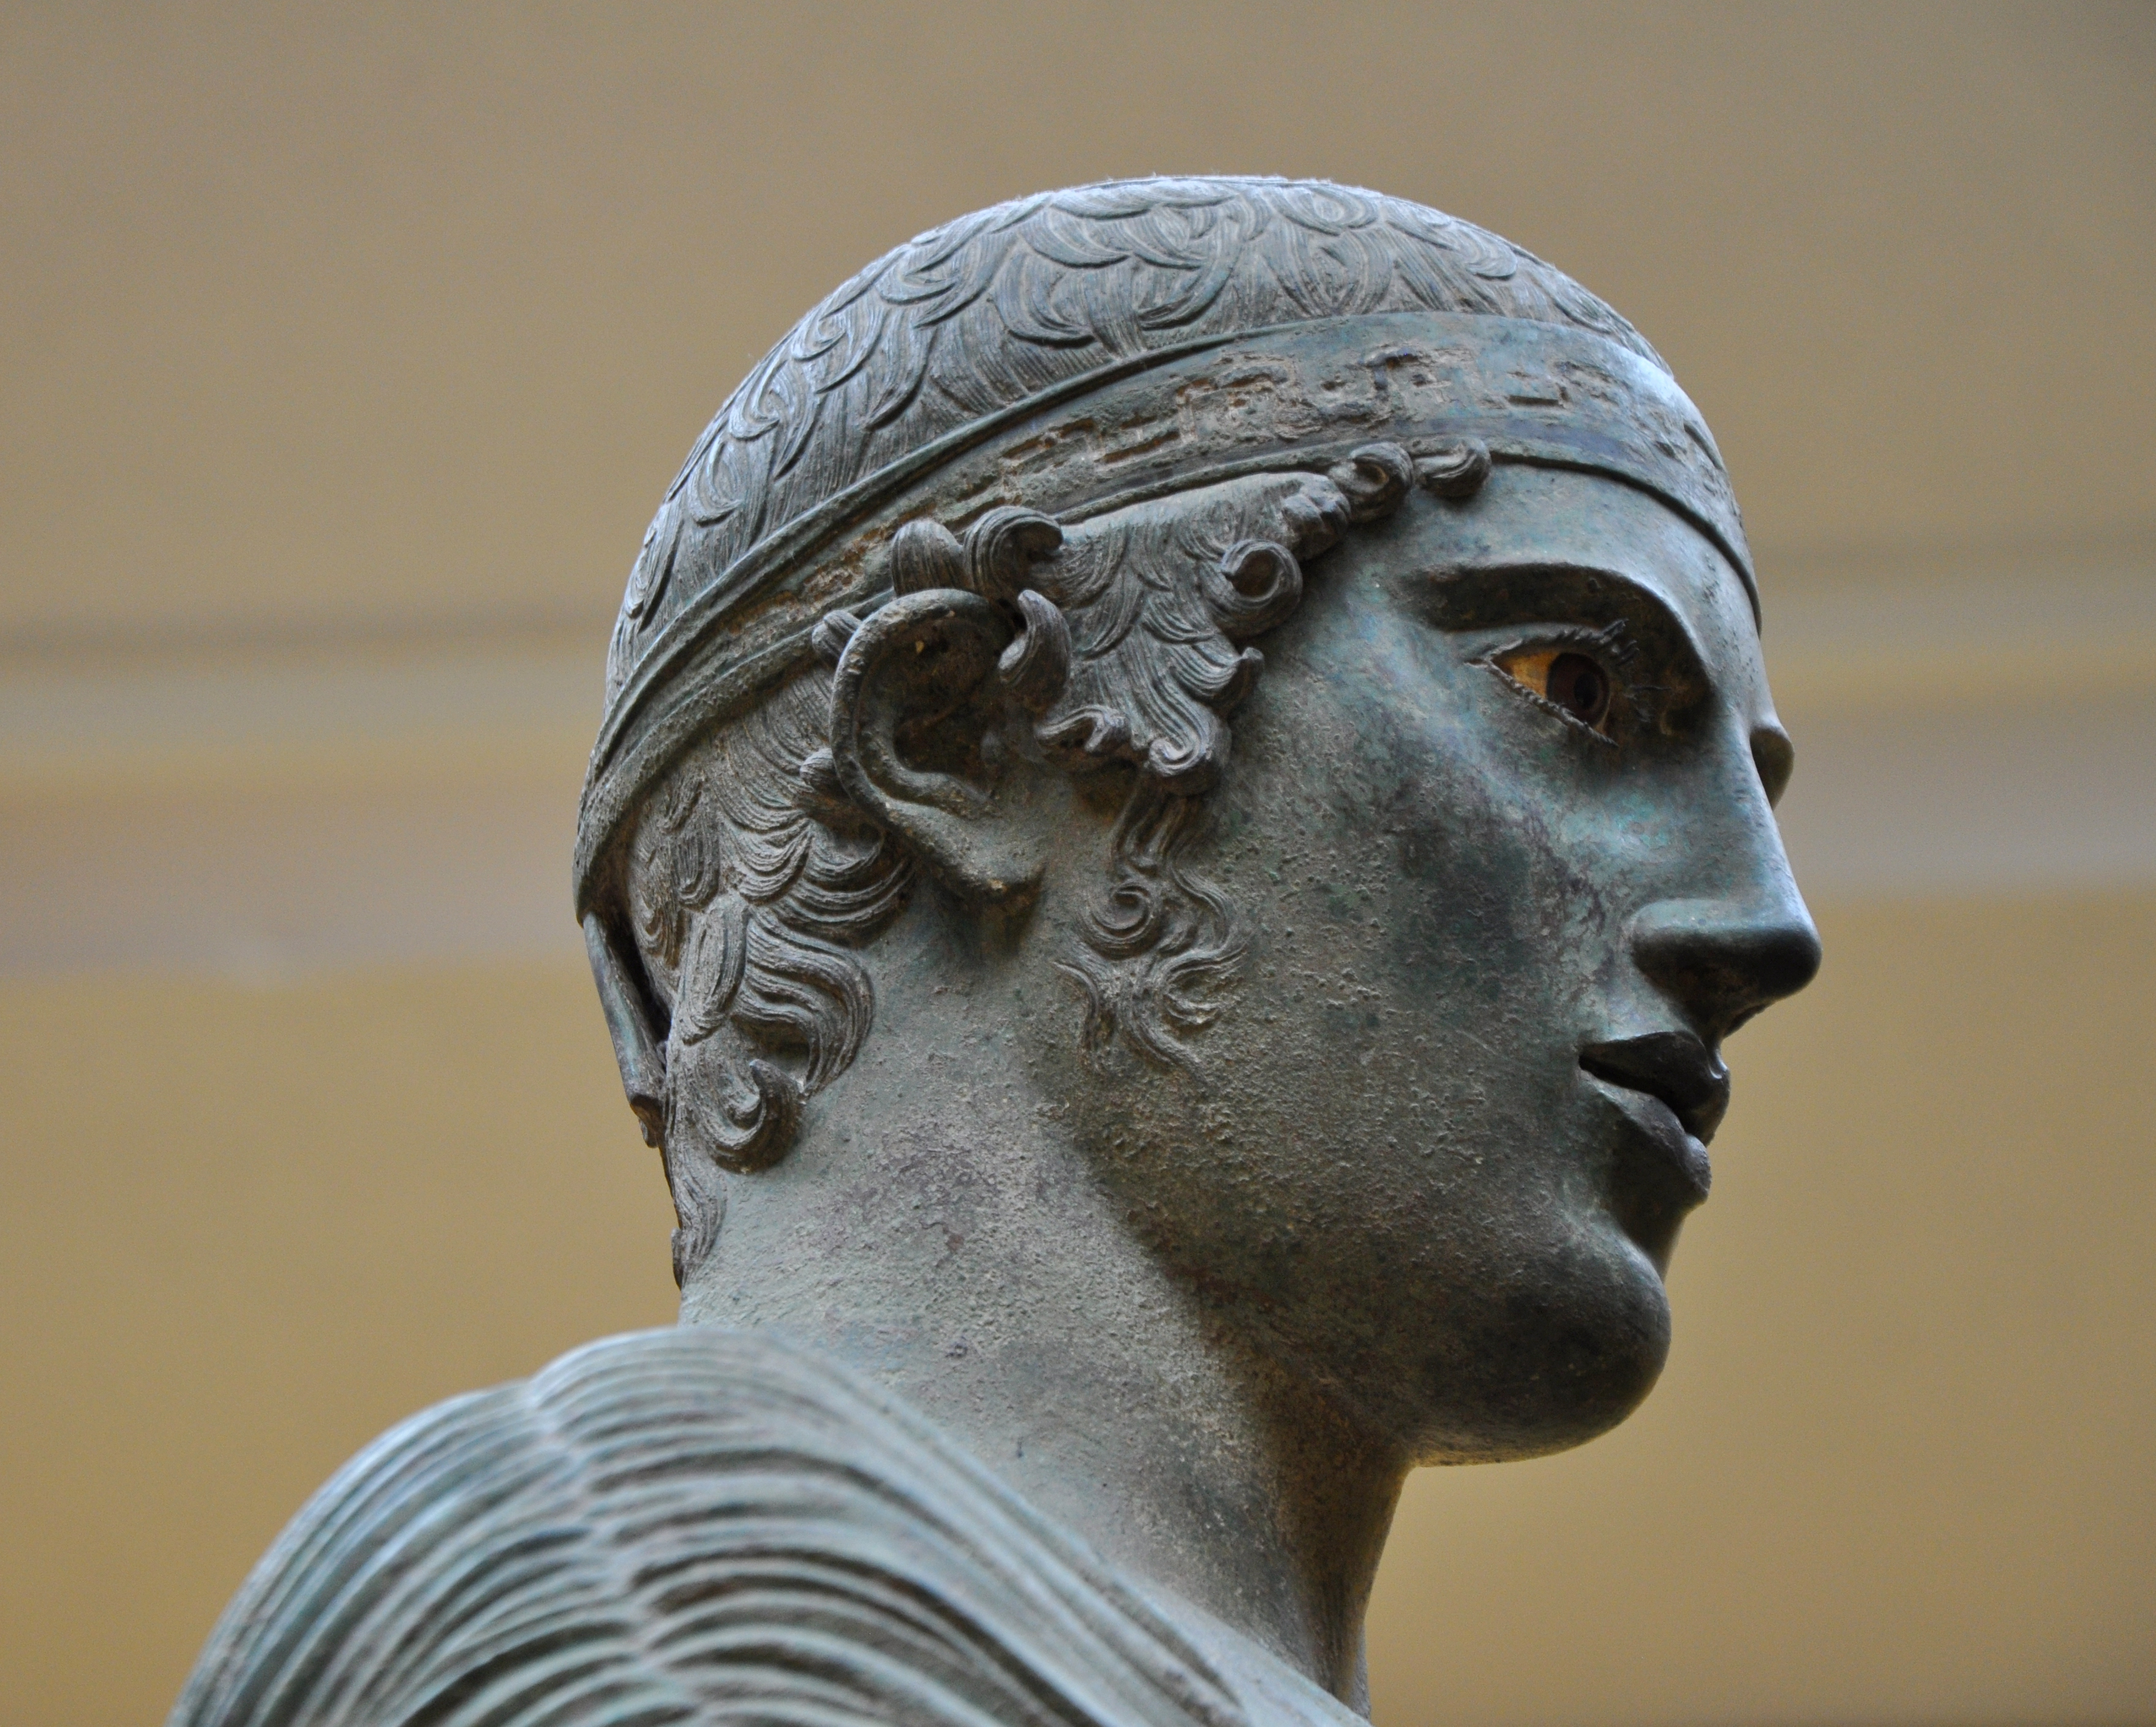 """Closeup of the """"Charioteer of Delphi."""" Greek bronze, circa 470s B.C.E. Image by Helen Simonsson (Own work) [CC BY-SA 3.0 (http://creativecommons.org/licenses/by-sa/3.0)], via Wikimedia Commons."""